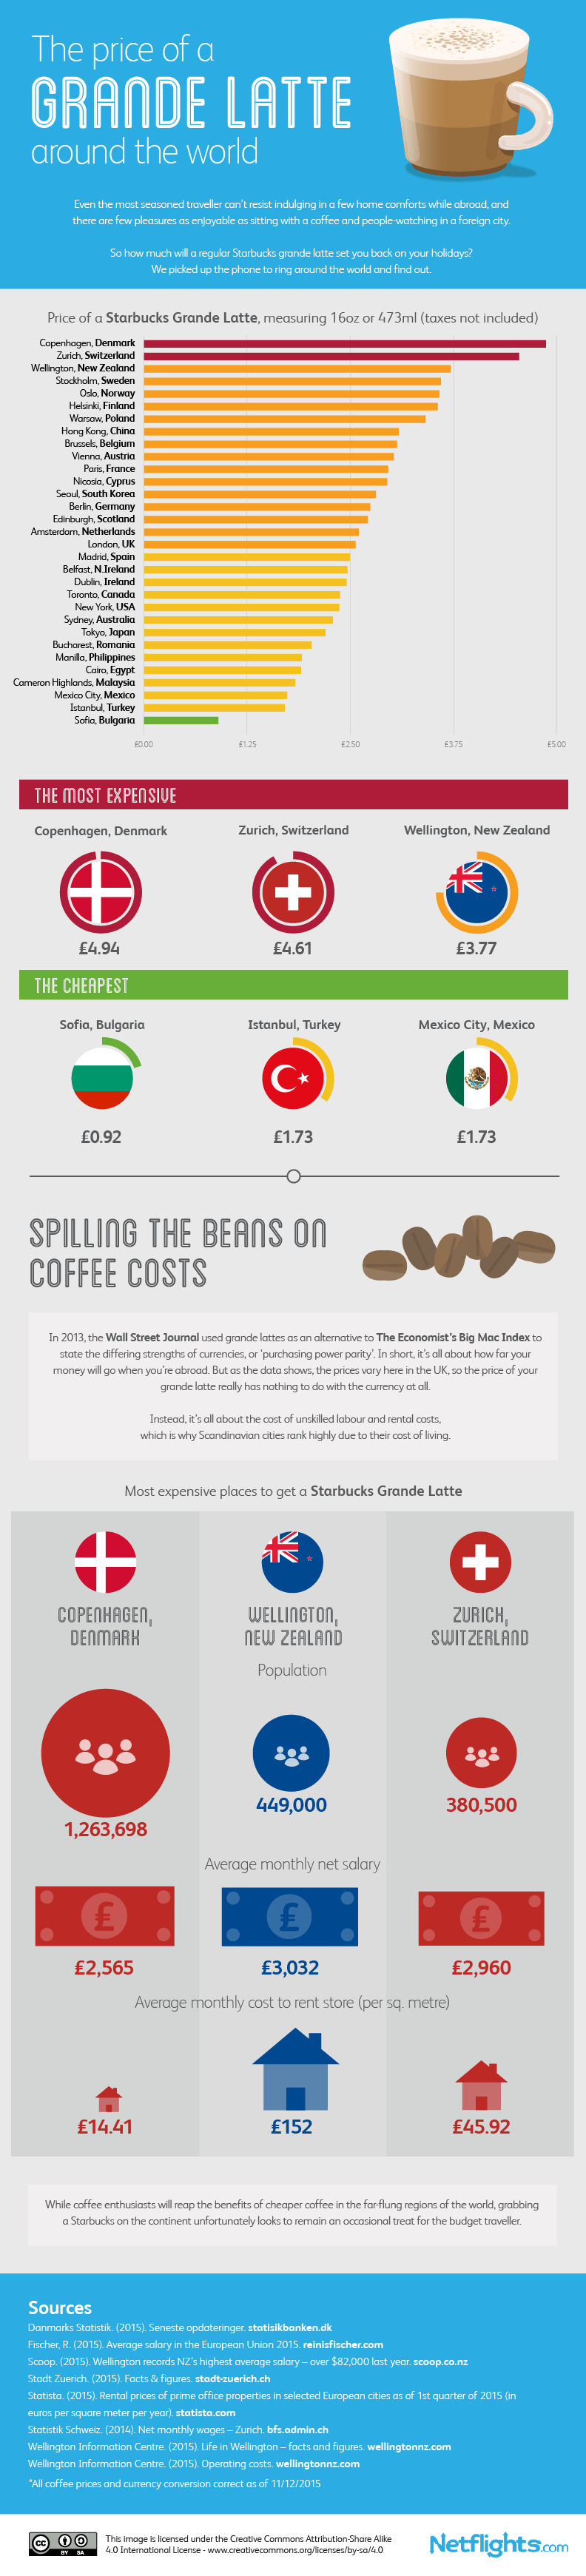 The Price of a Grande Latte Around The World